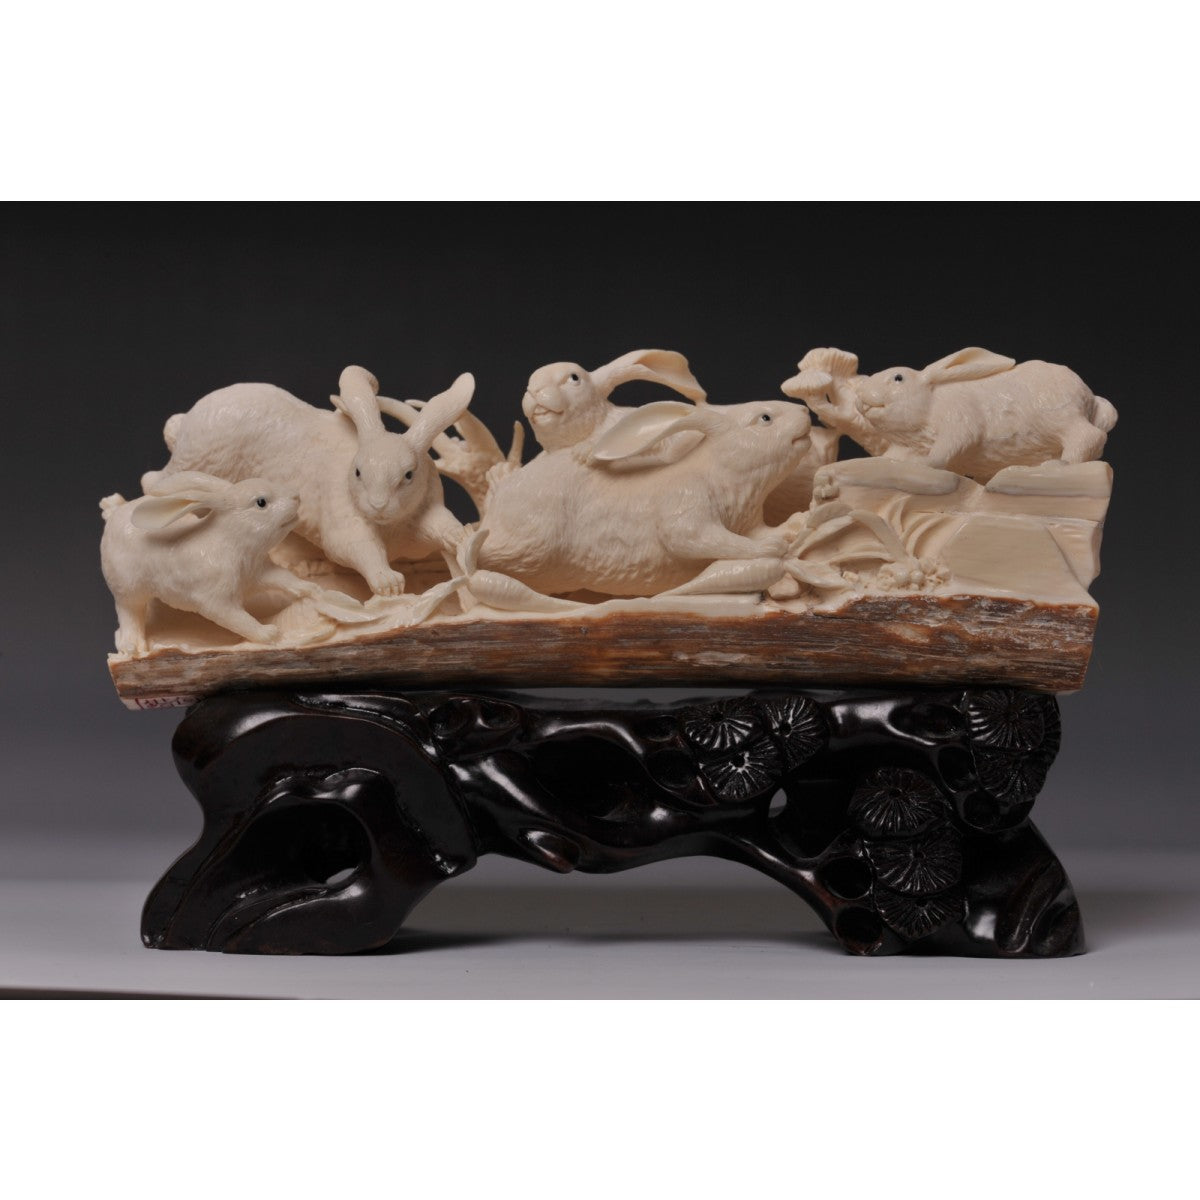 Mammoth Ivory- Rabbits Playing